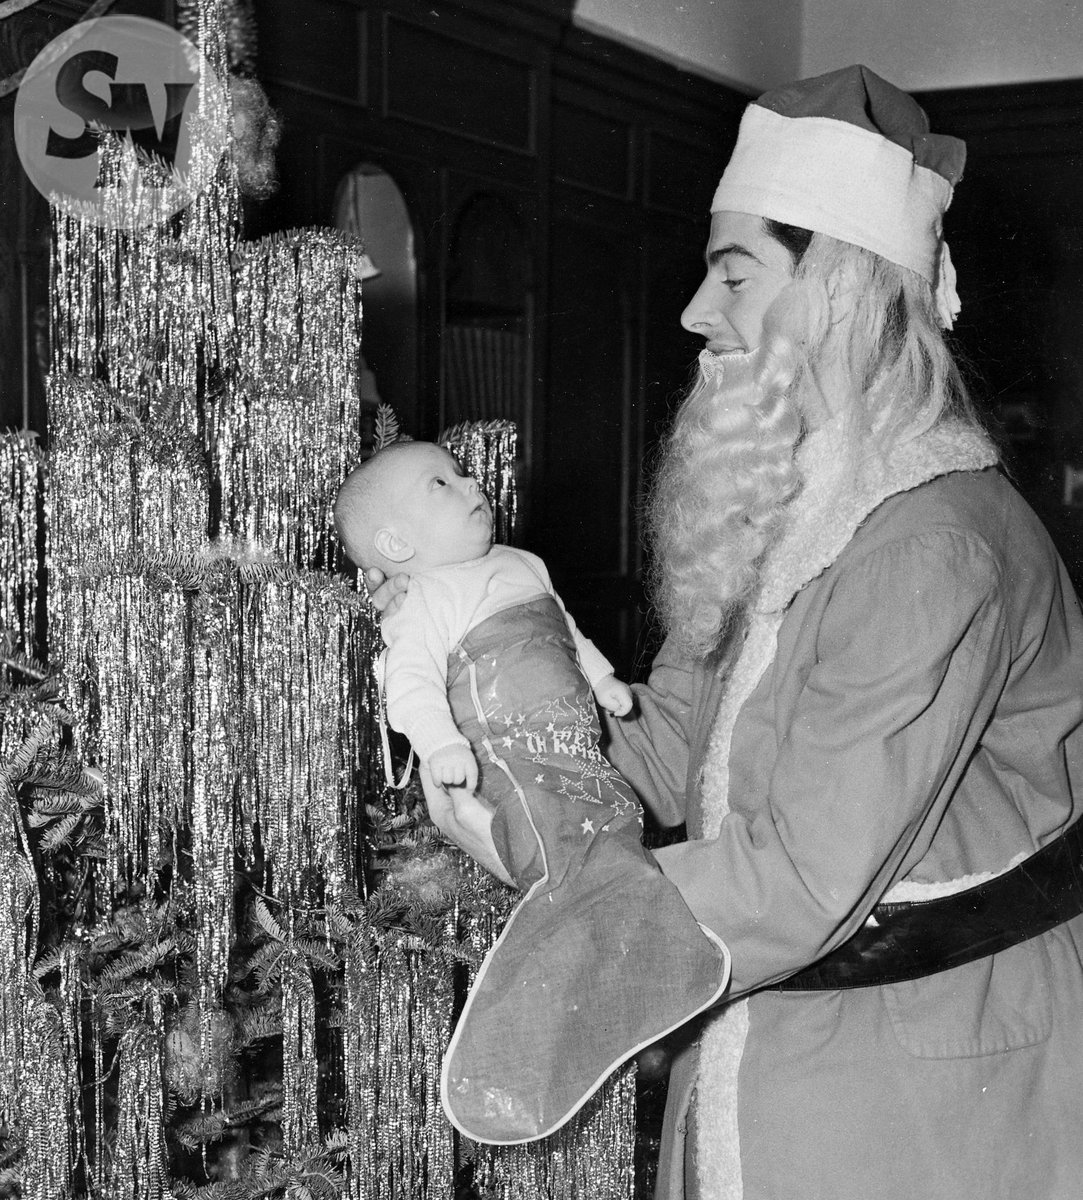 Joe dimaggio @yankees dressed for christmas as santa with his son ...